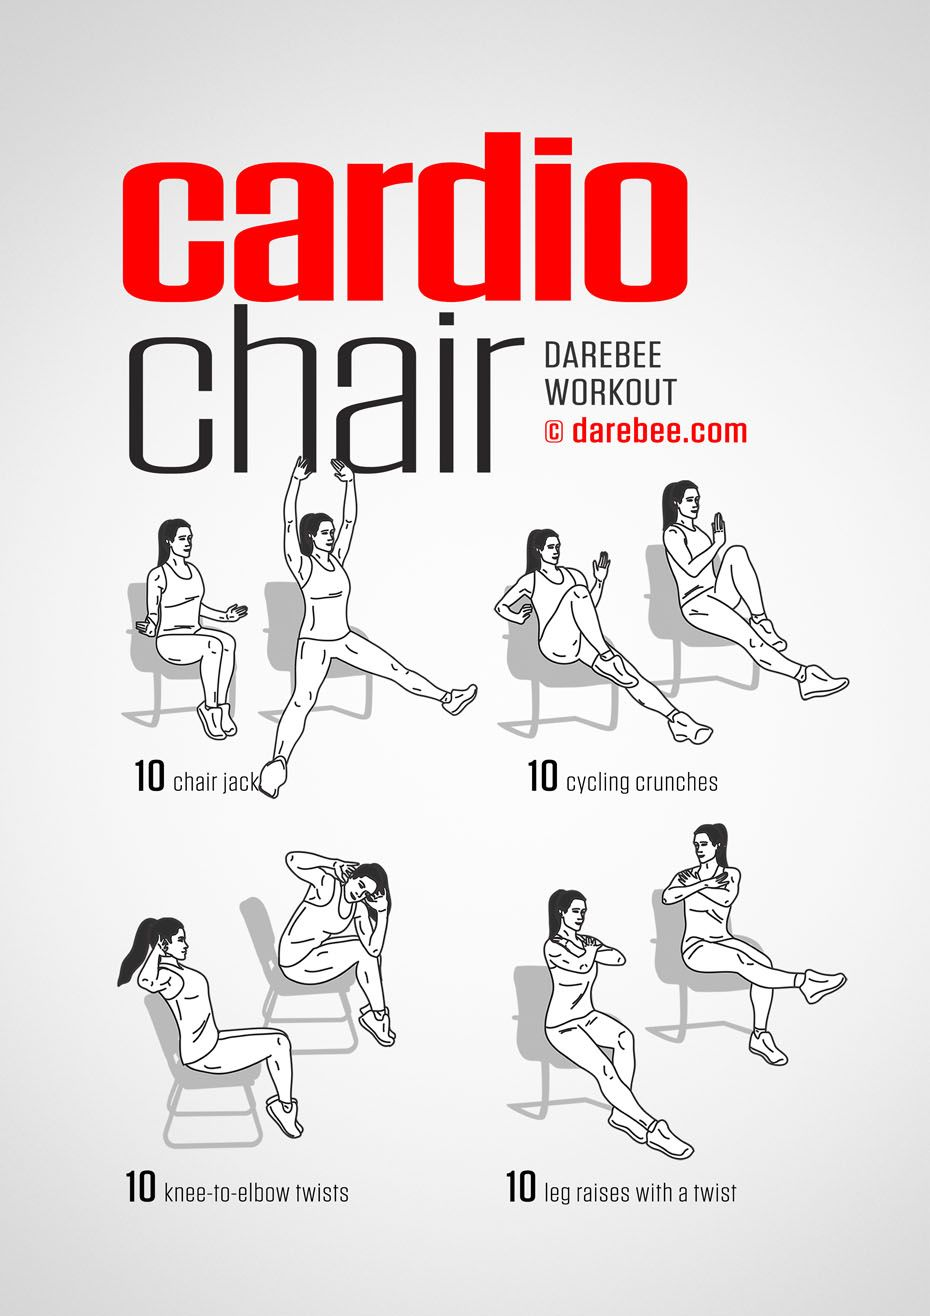 Ab Cruncher Chair Ergonomic Drafting Chairs Melbourne Serie D Exercices Tres Faciles 3 Exercice Physique Cardio Chaise Deroulement